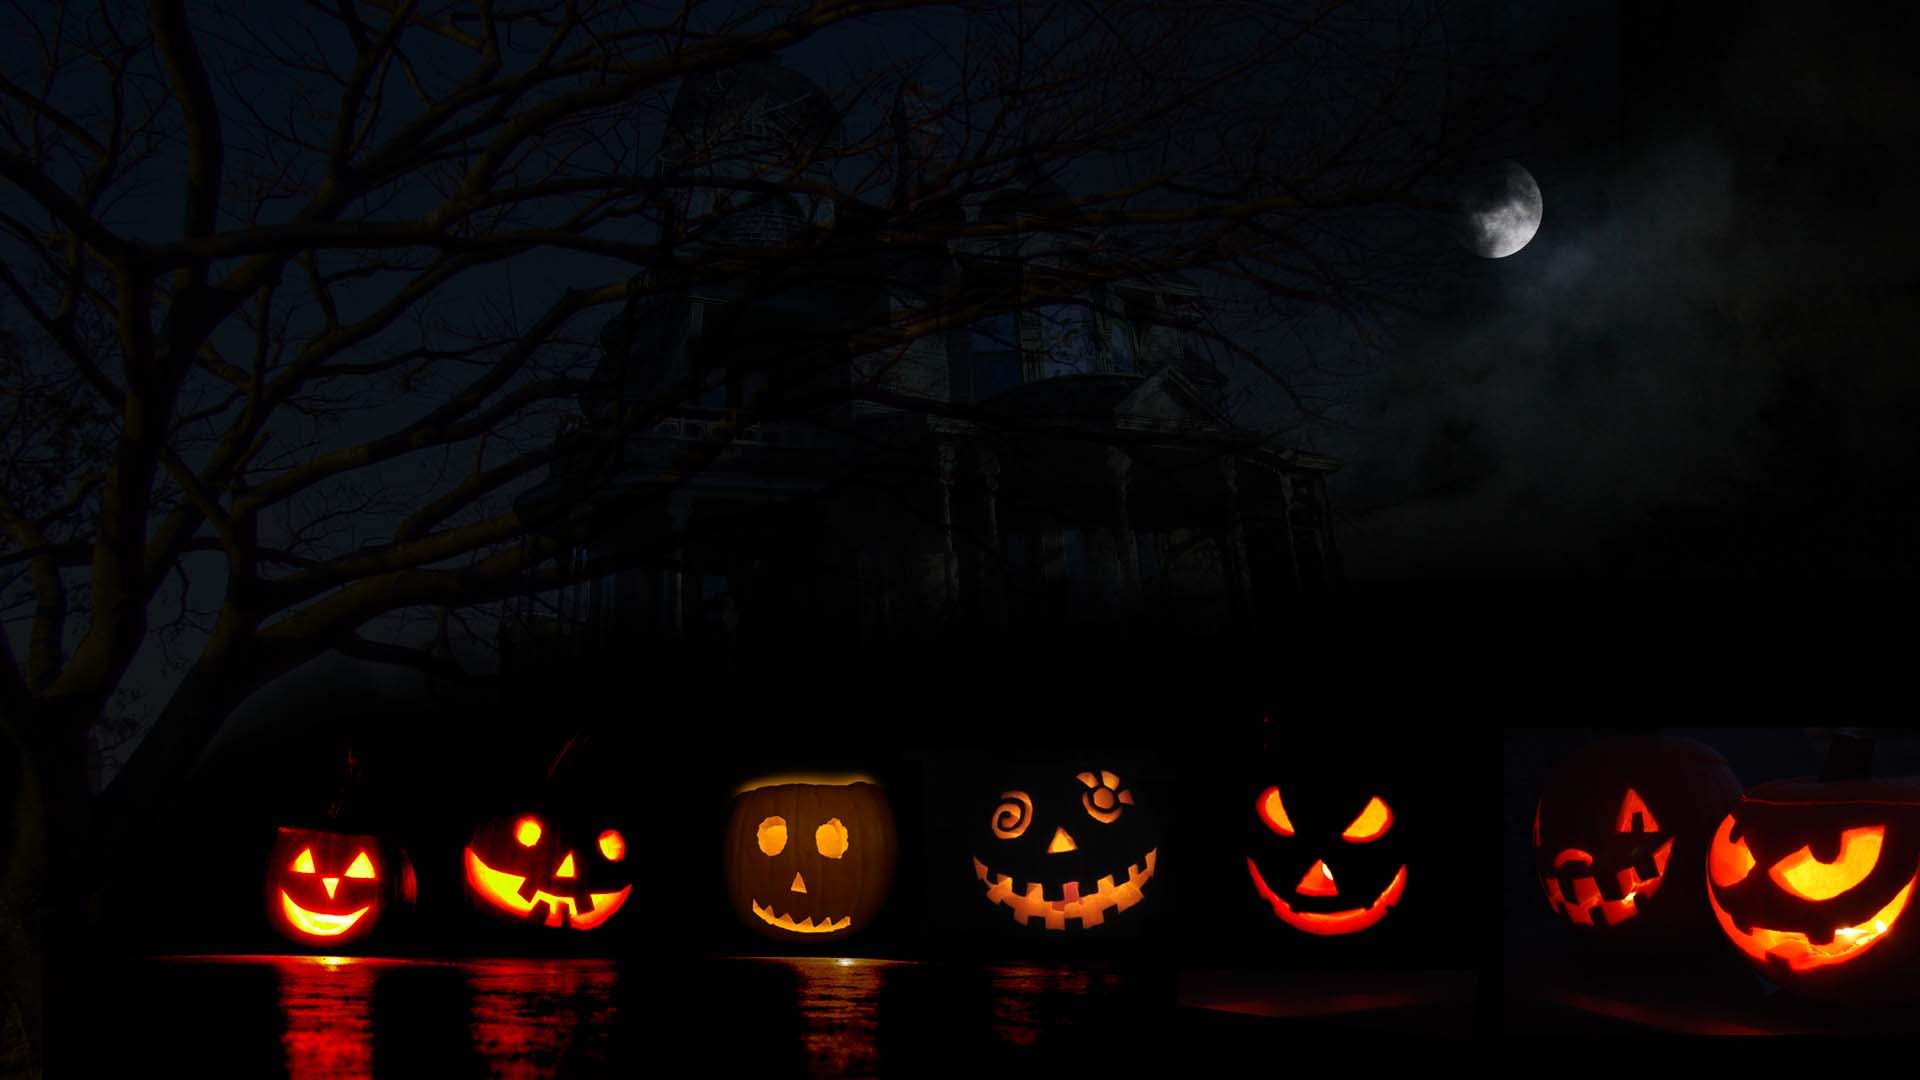 Halloween Backgrounds HD Backgrounds Pic 1920x1080